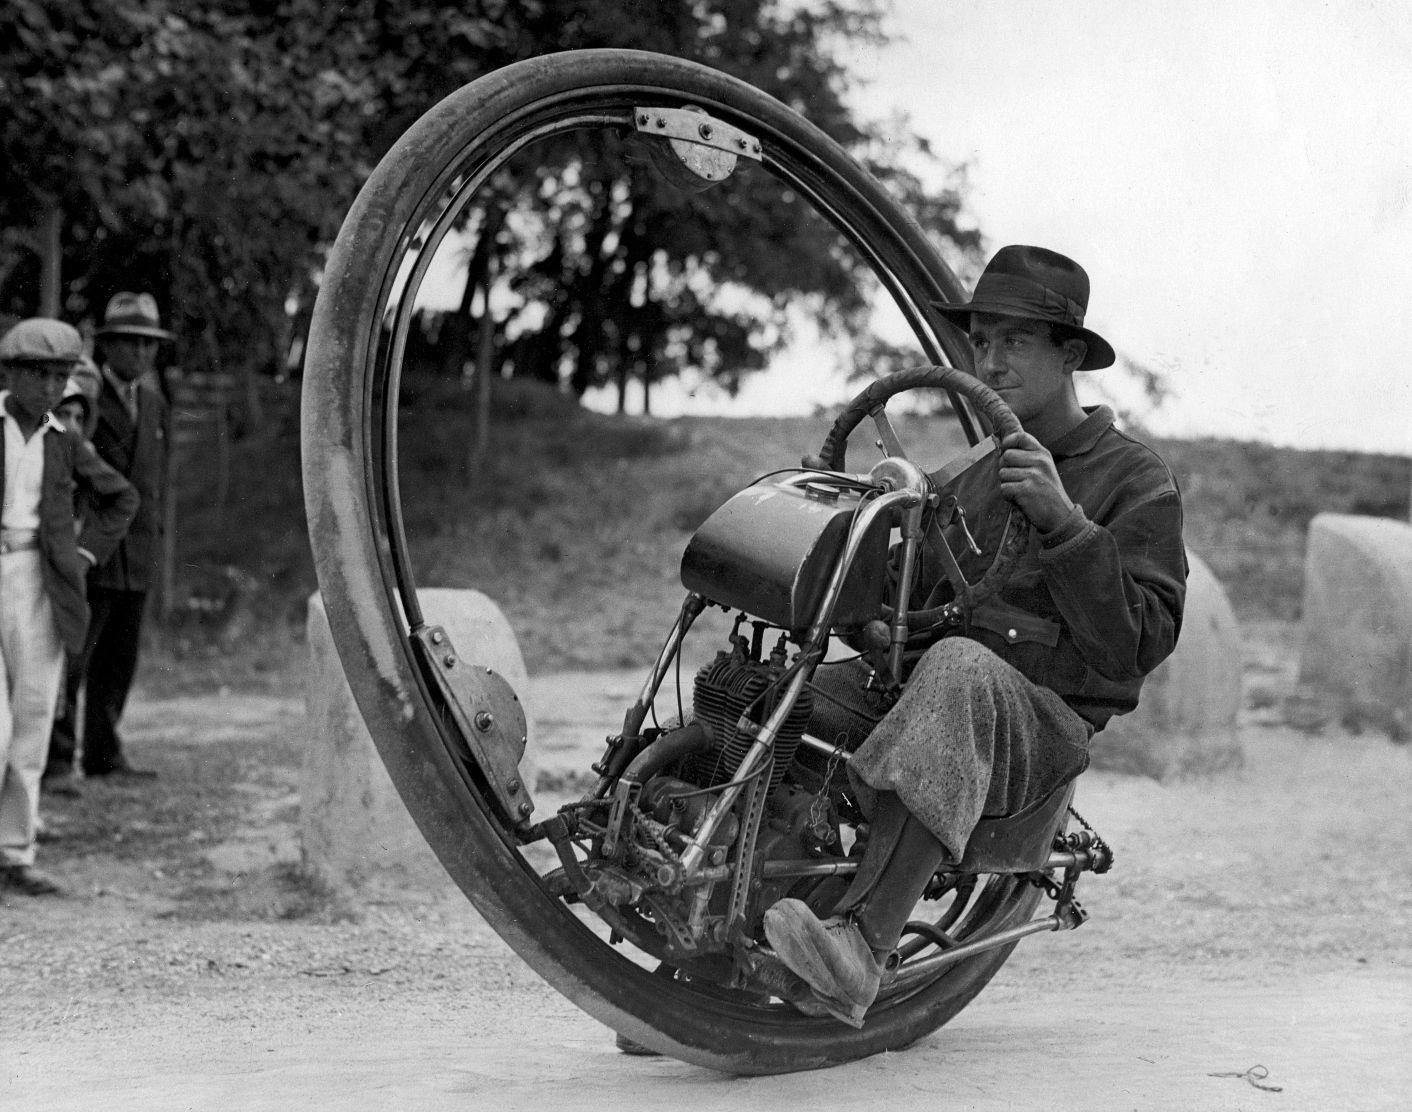 One_wheel_motorcycle_Goventosa.jpg